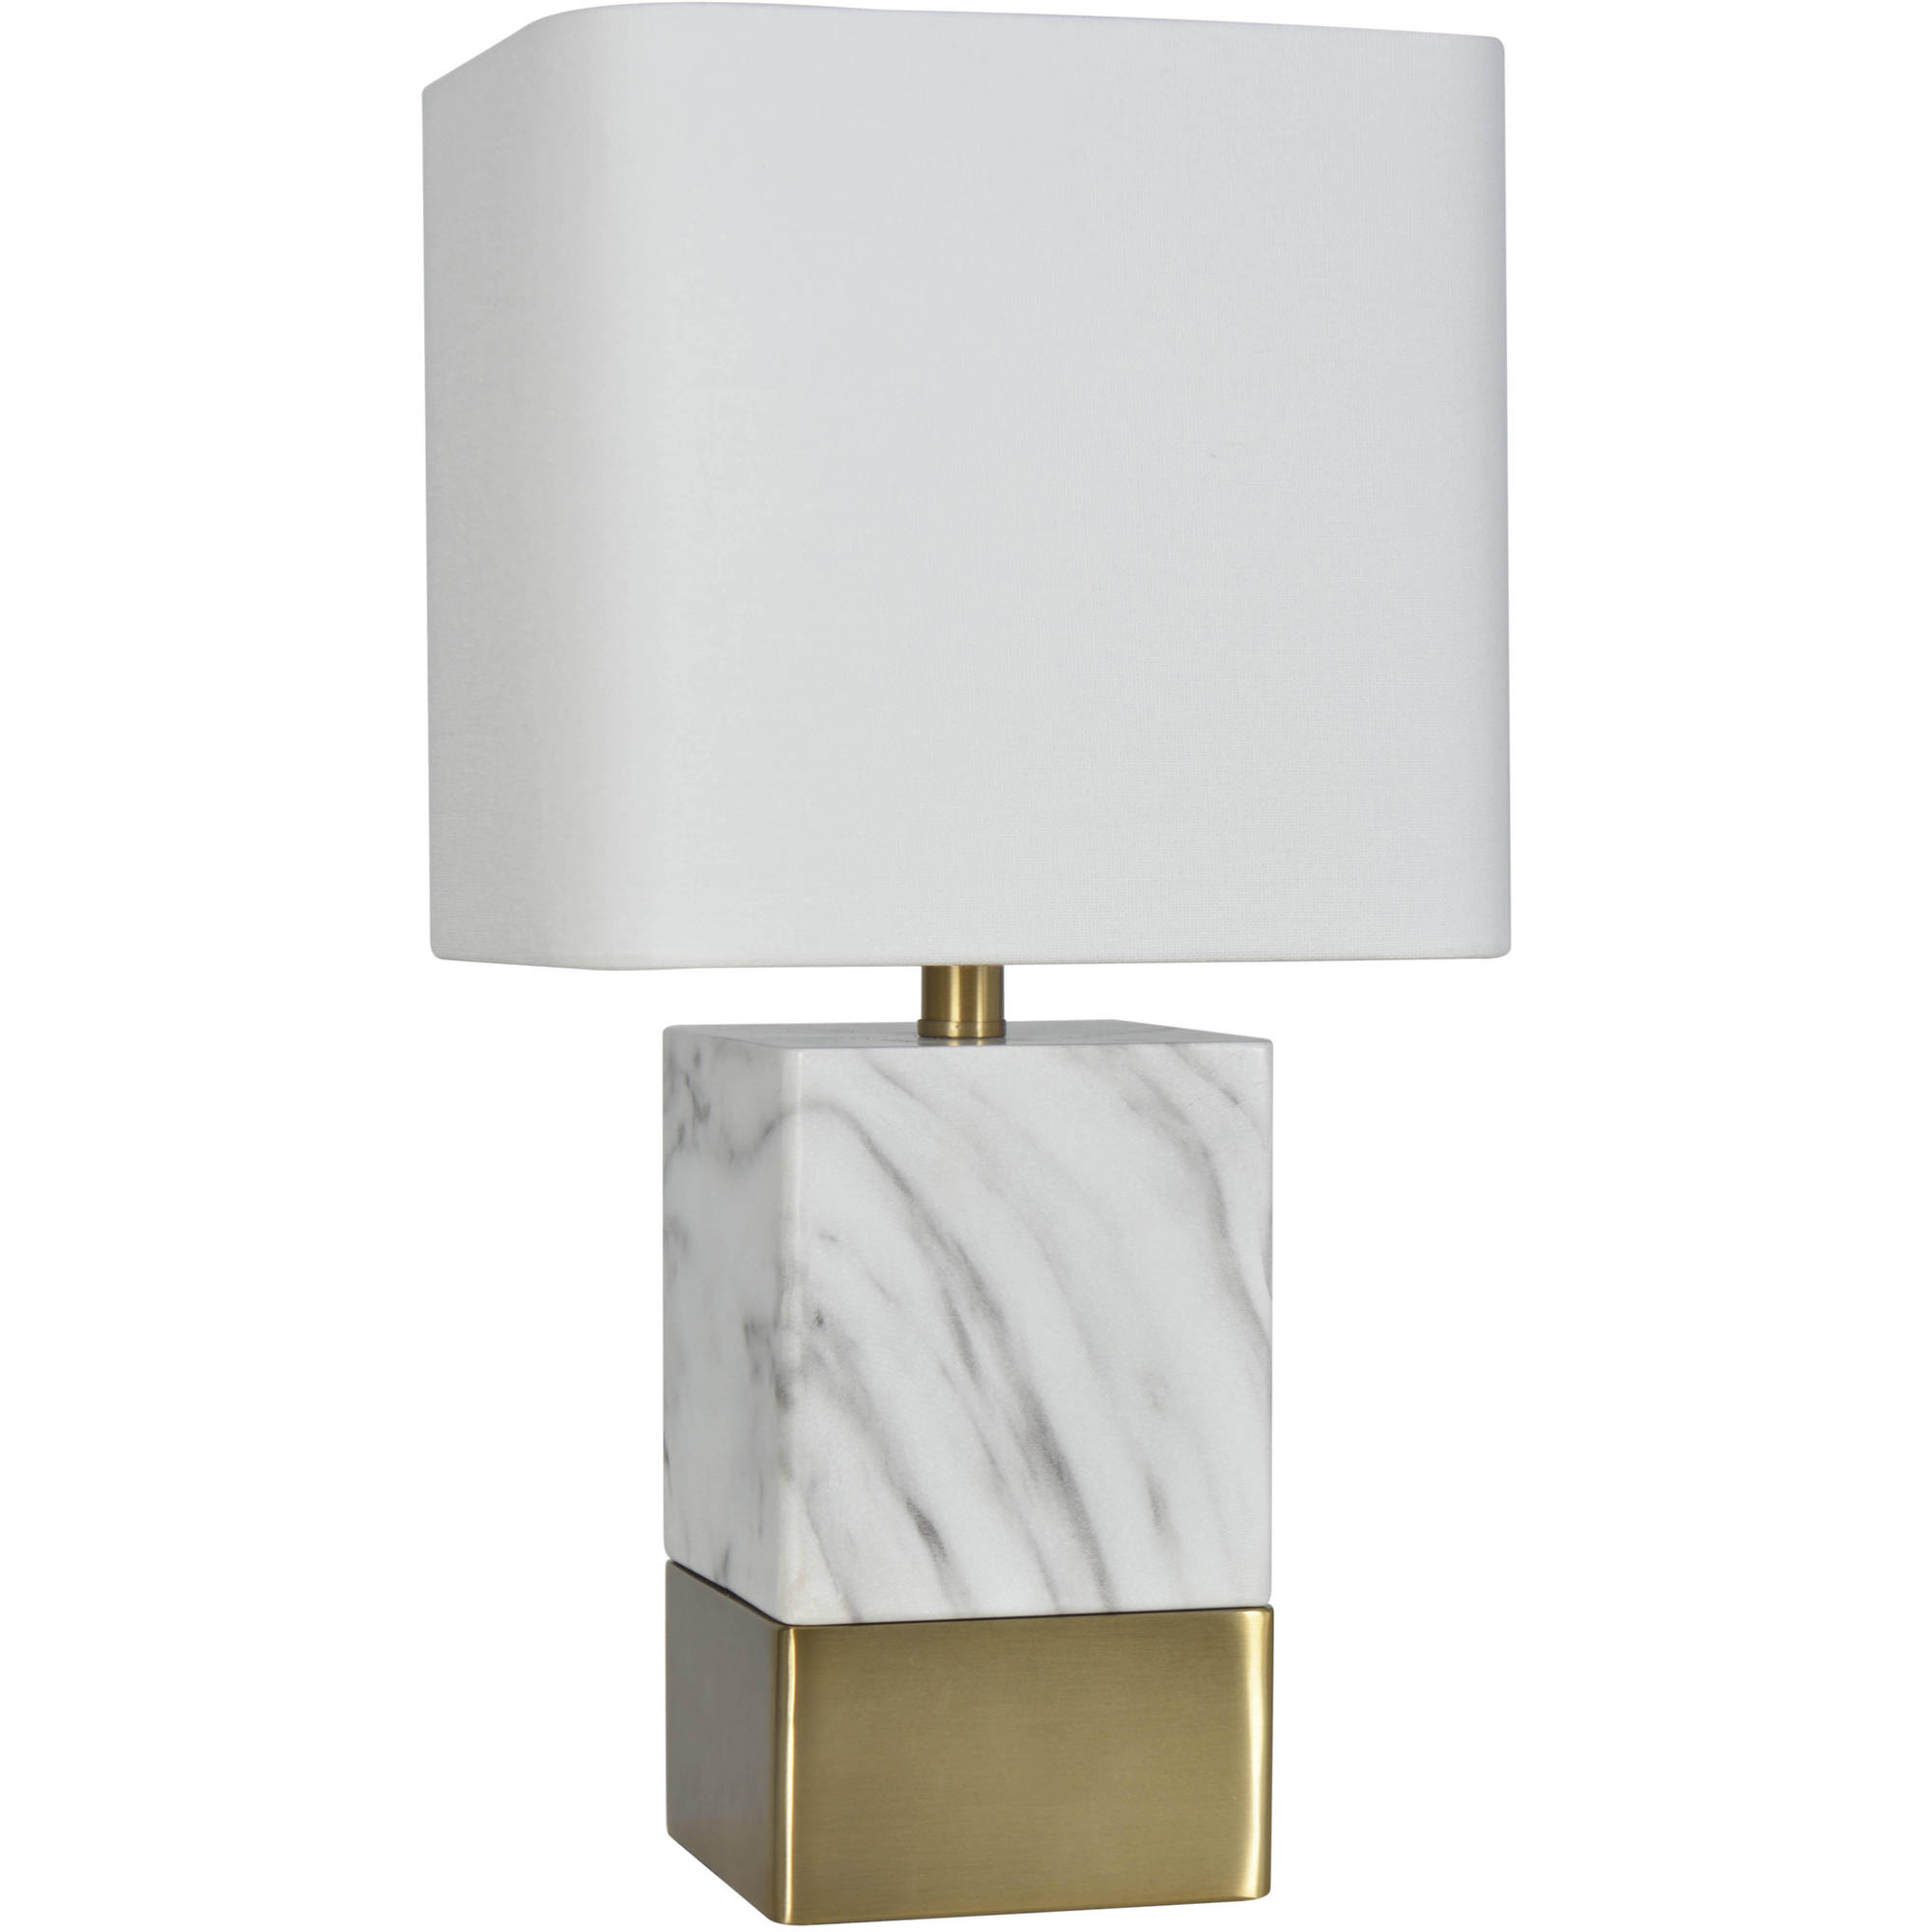 Genial Better Homes And Gardens Gray And White Faux Marble Table Lamp